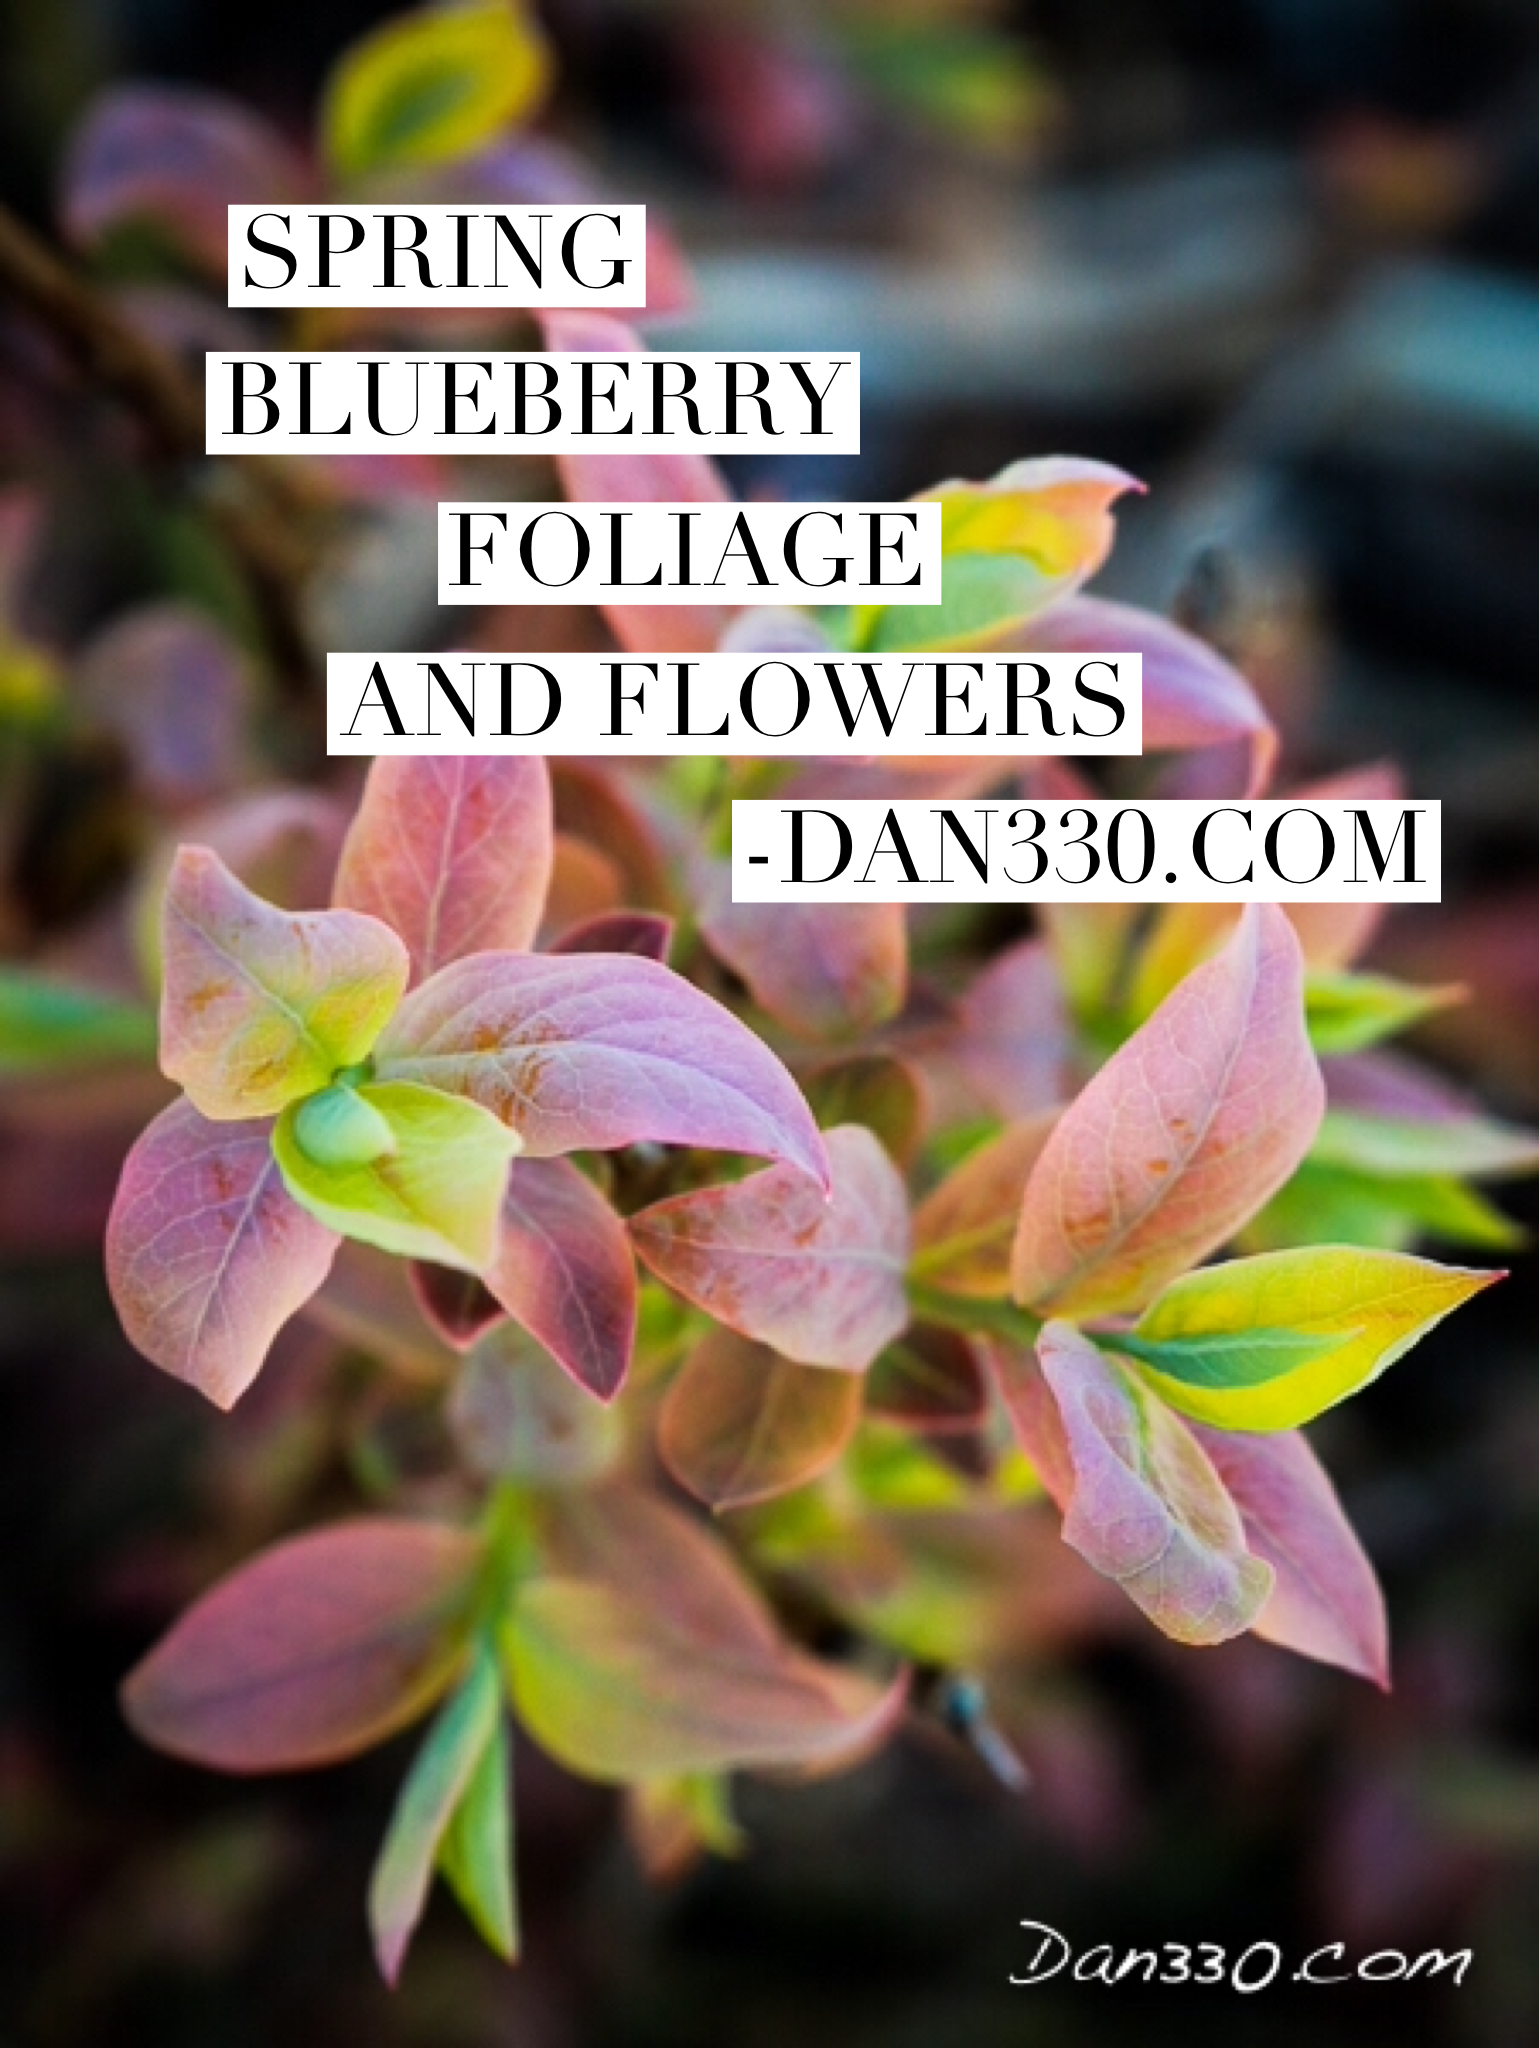 Blueberry flowers